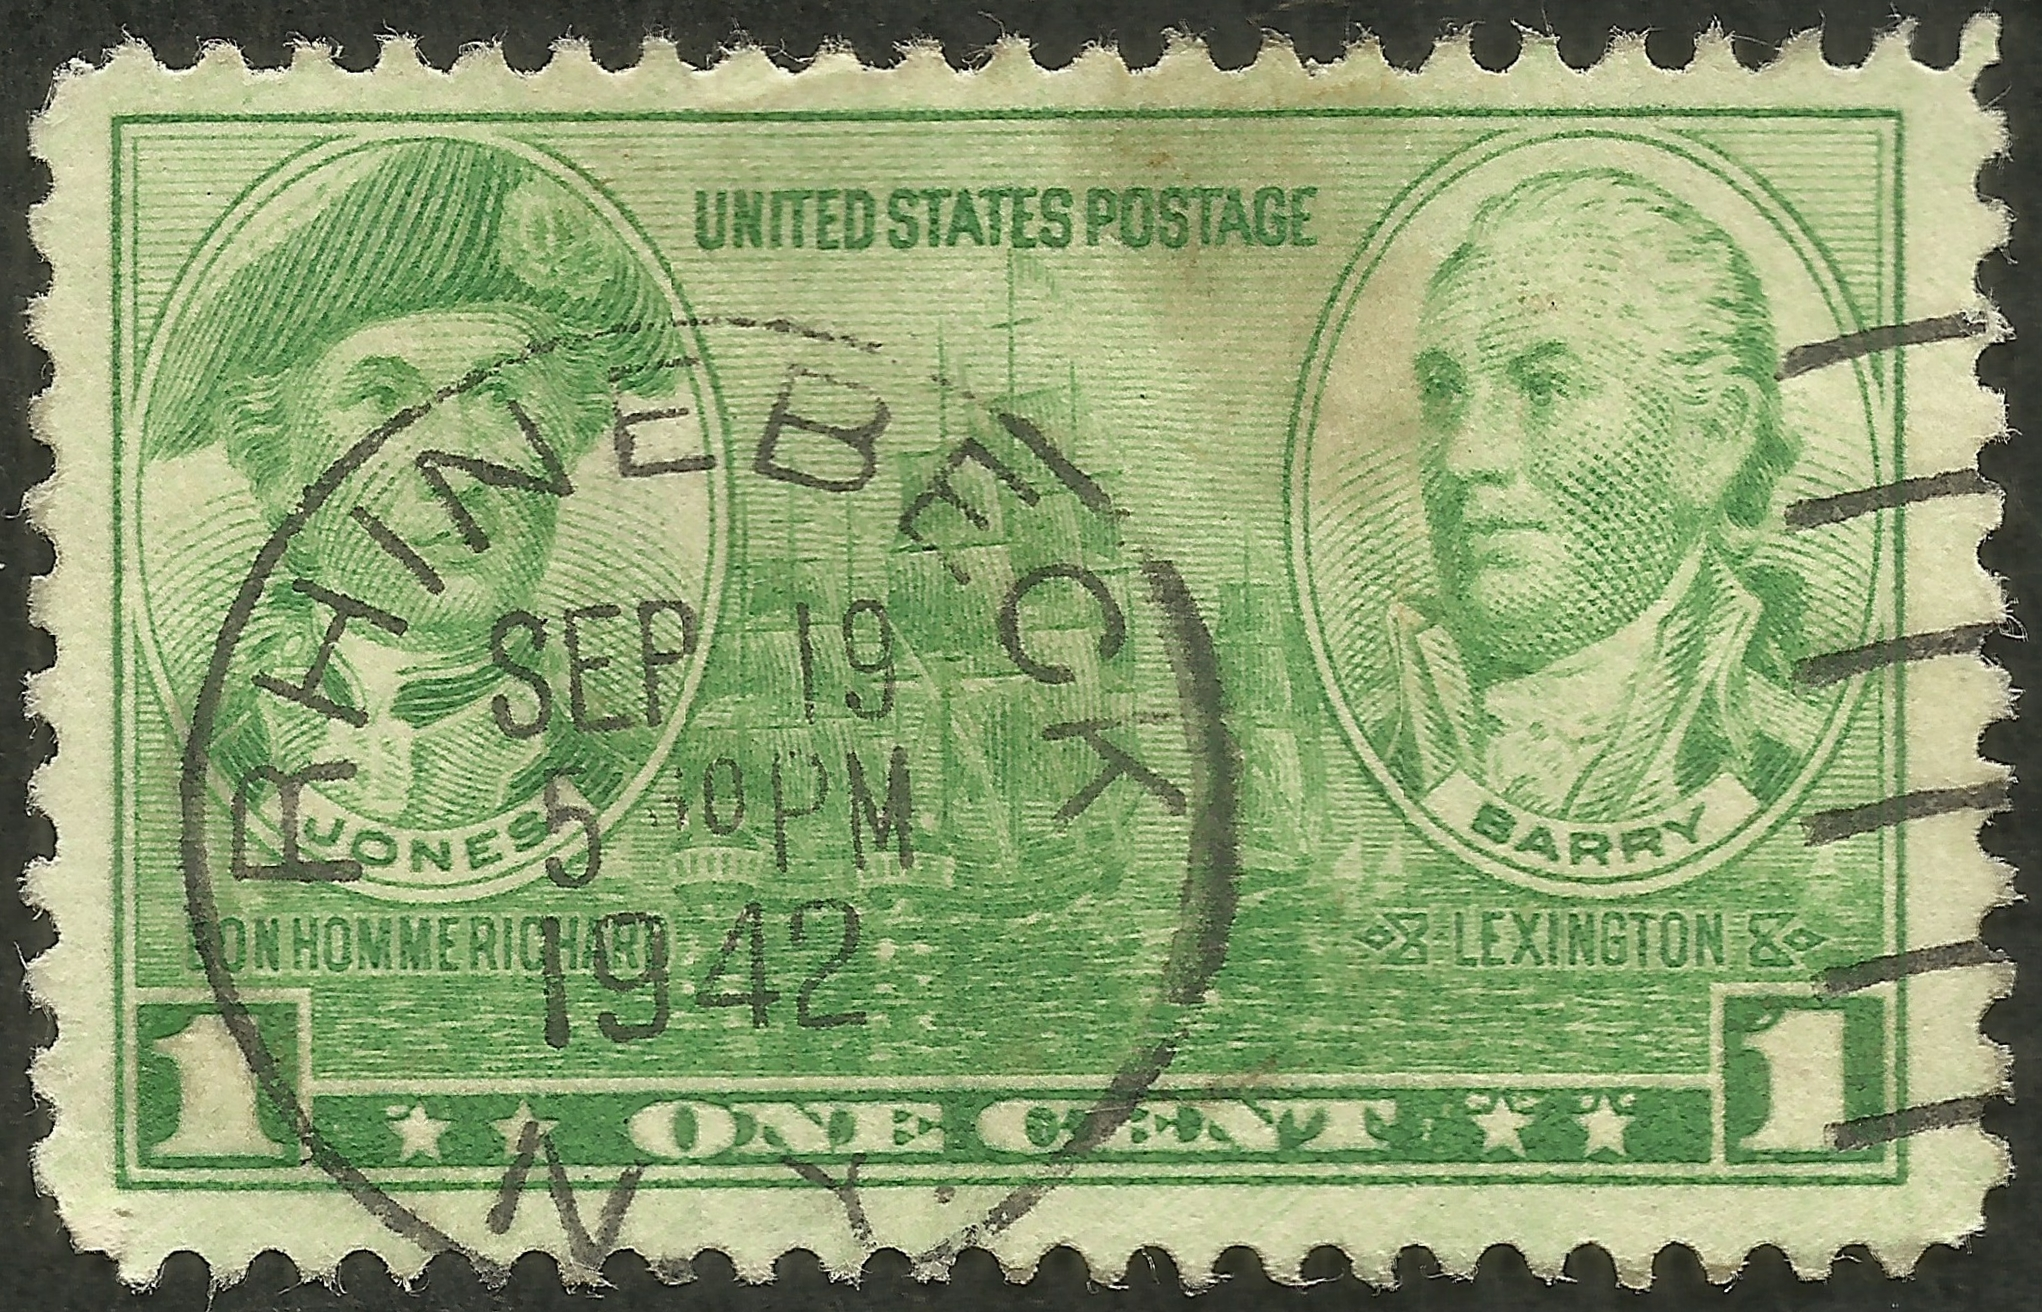 United States #790 (1936) postmarked 19 September 1942 Rhinebeck, New York